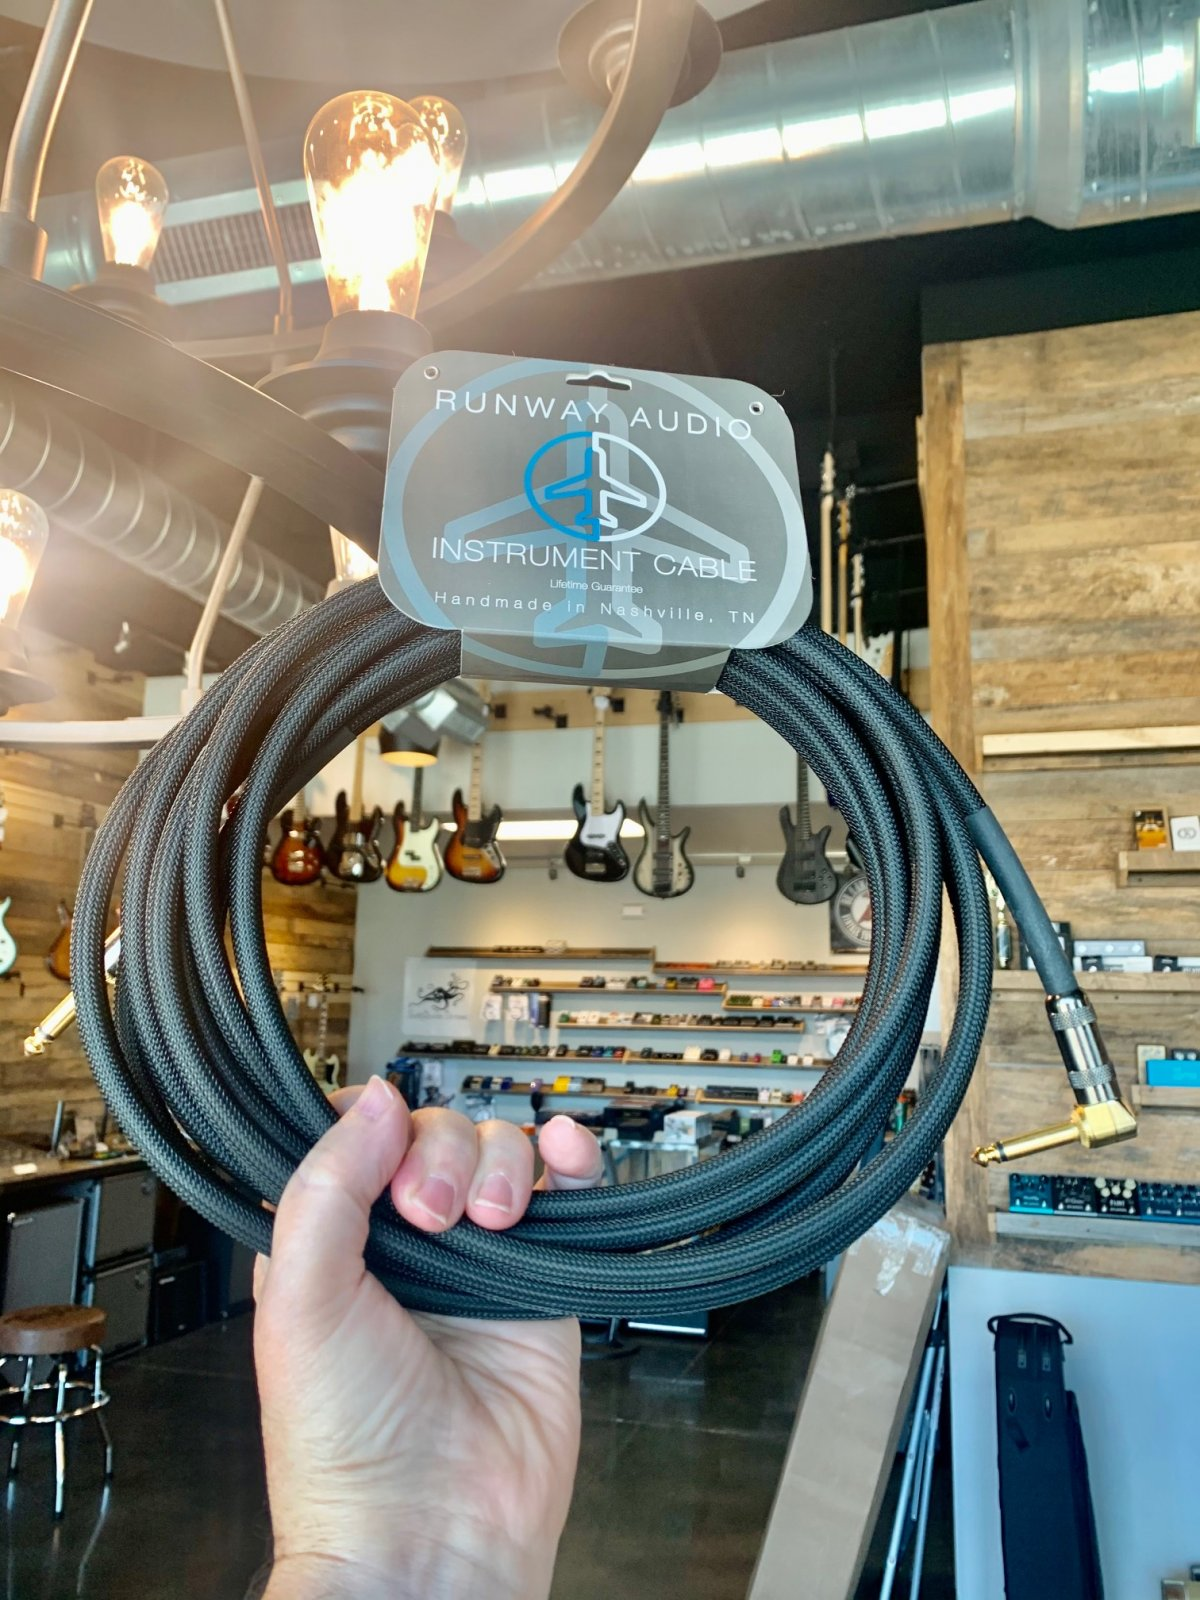 Runway Audio 10 Ft. St-St Cable in Black